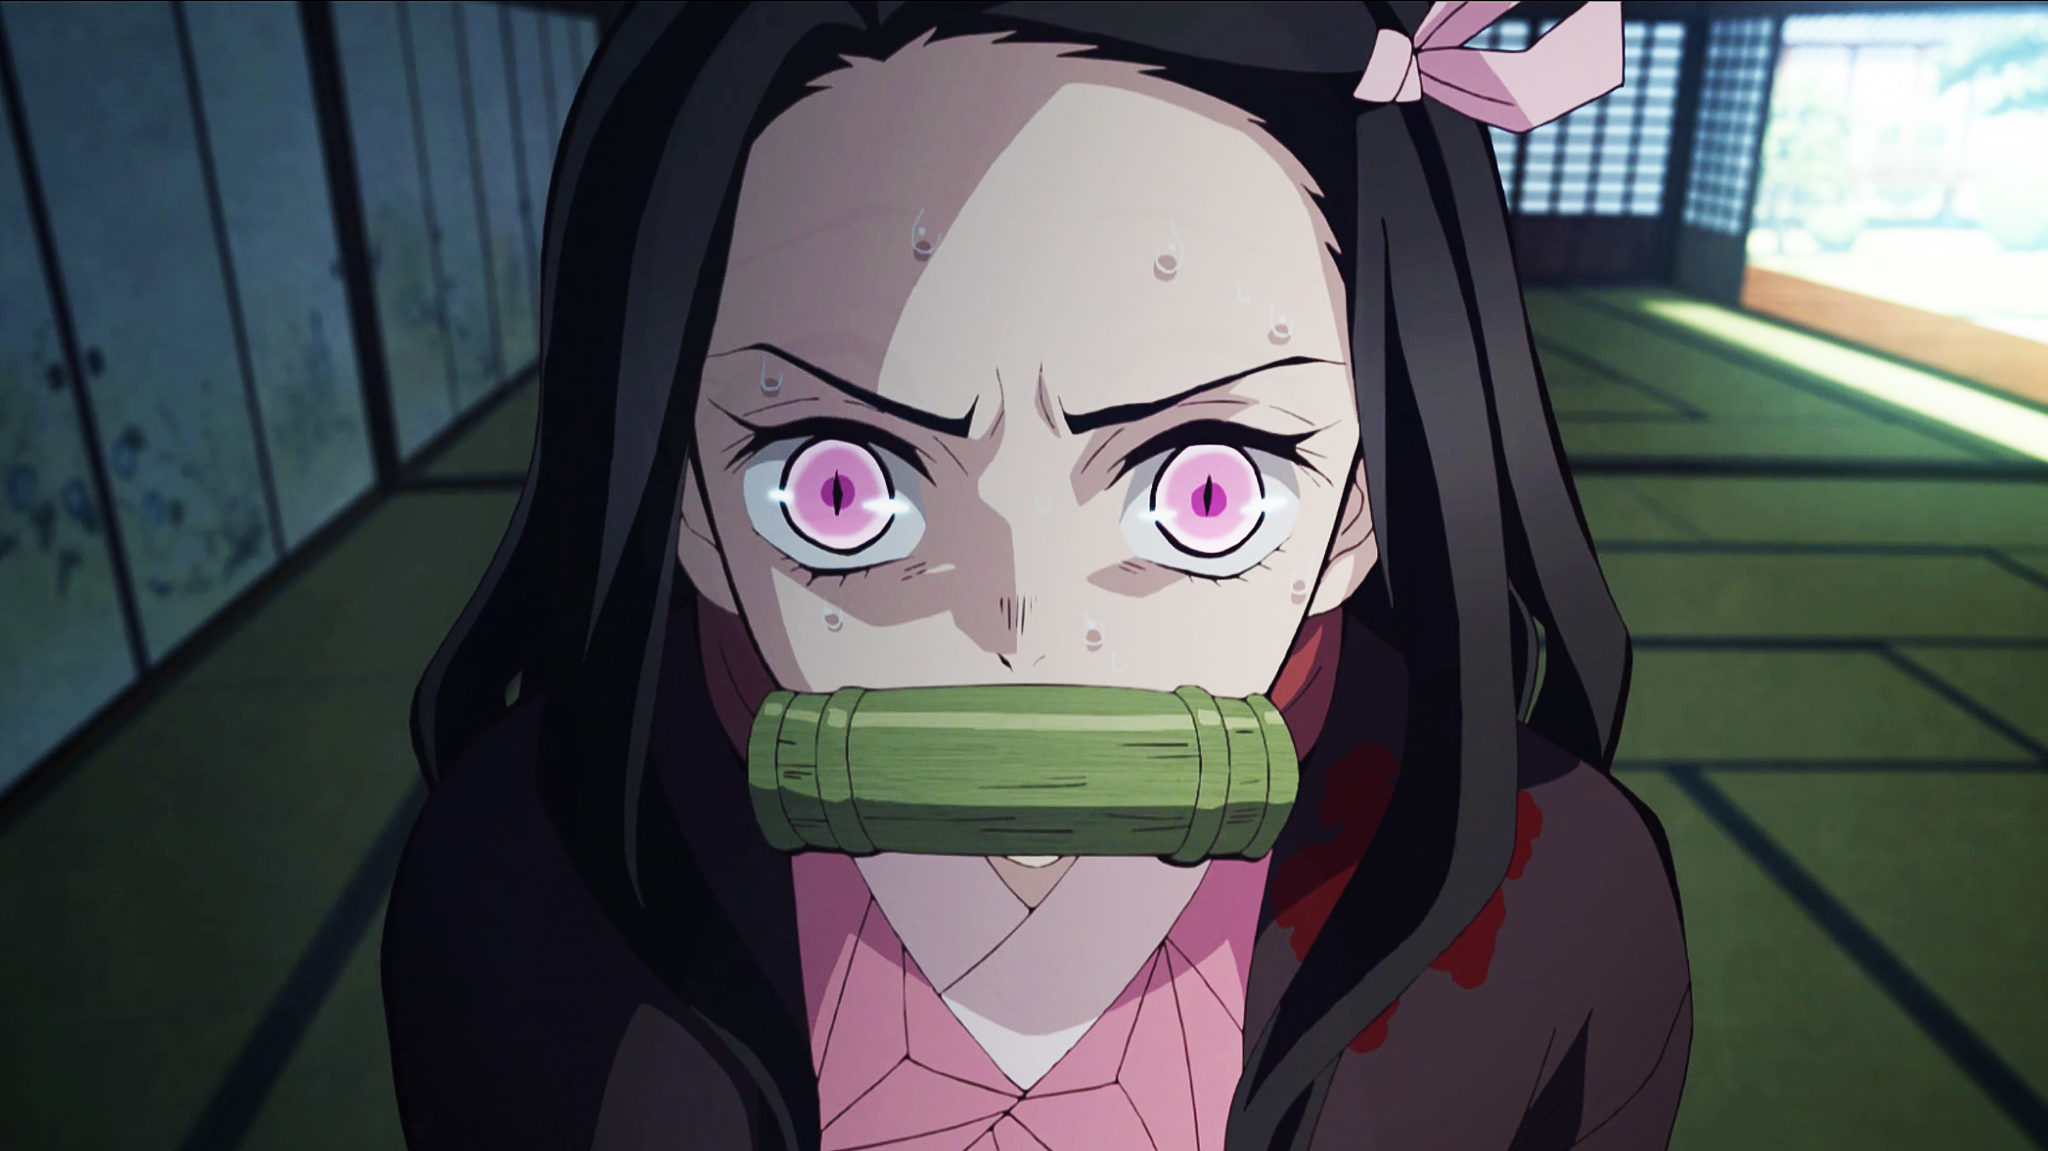 nezuko kamado demon slayer screenshot